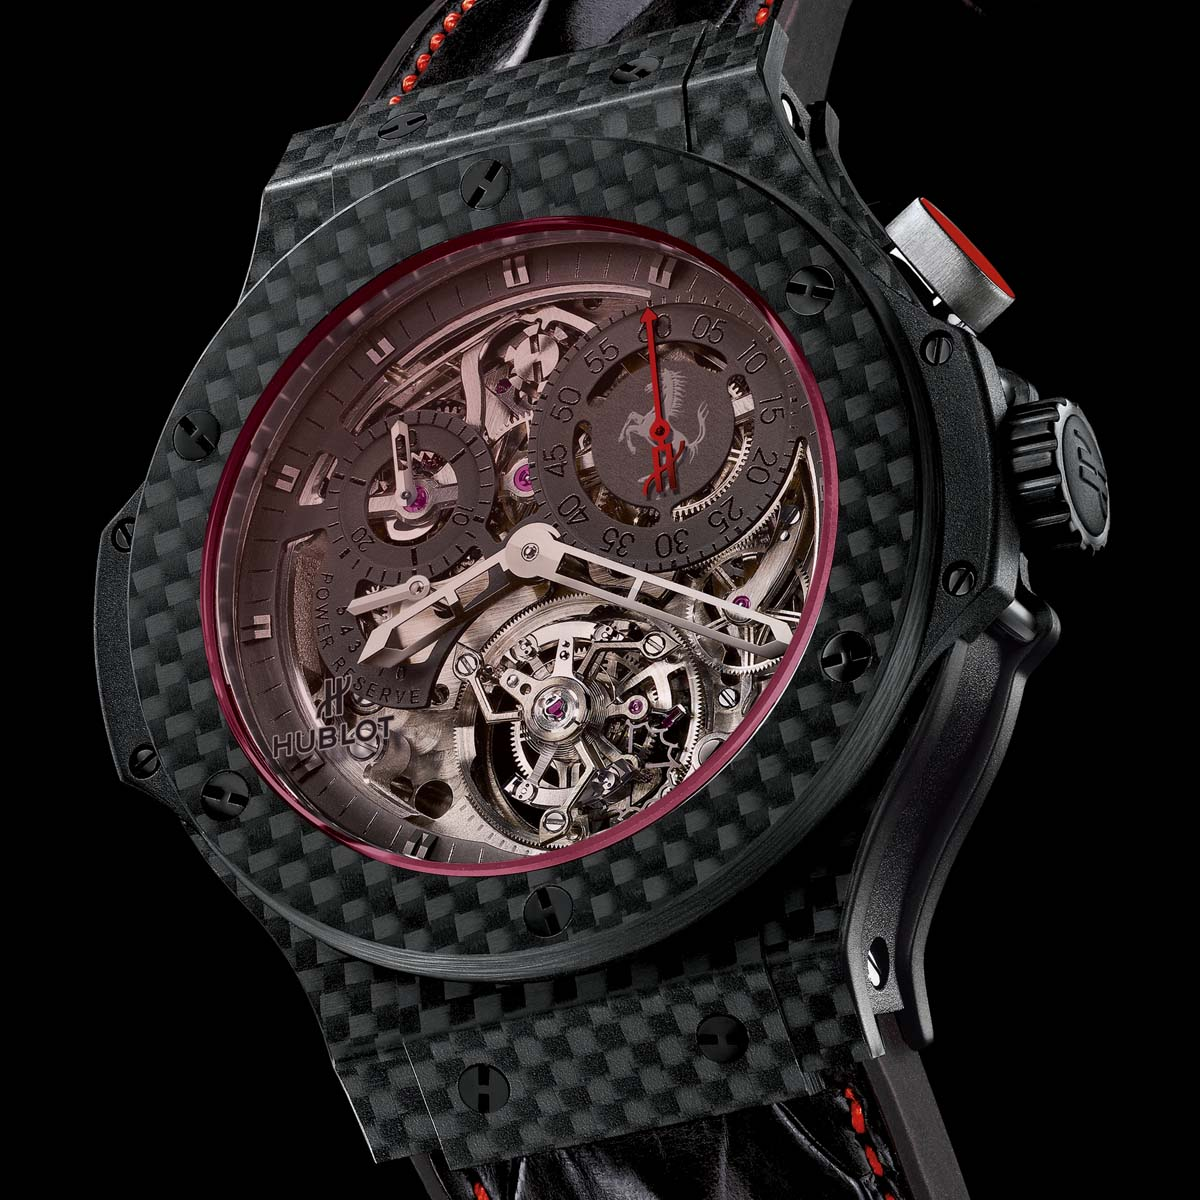 hublot montre ferrari prix. Black Bedroom Furniture Sets. Home Design Ideas